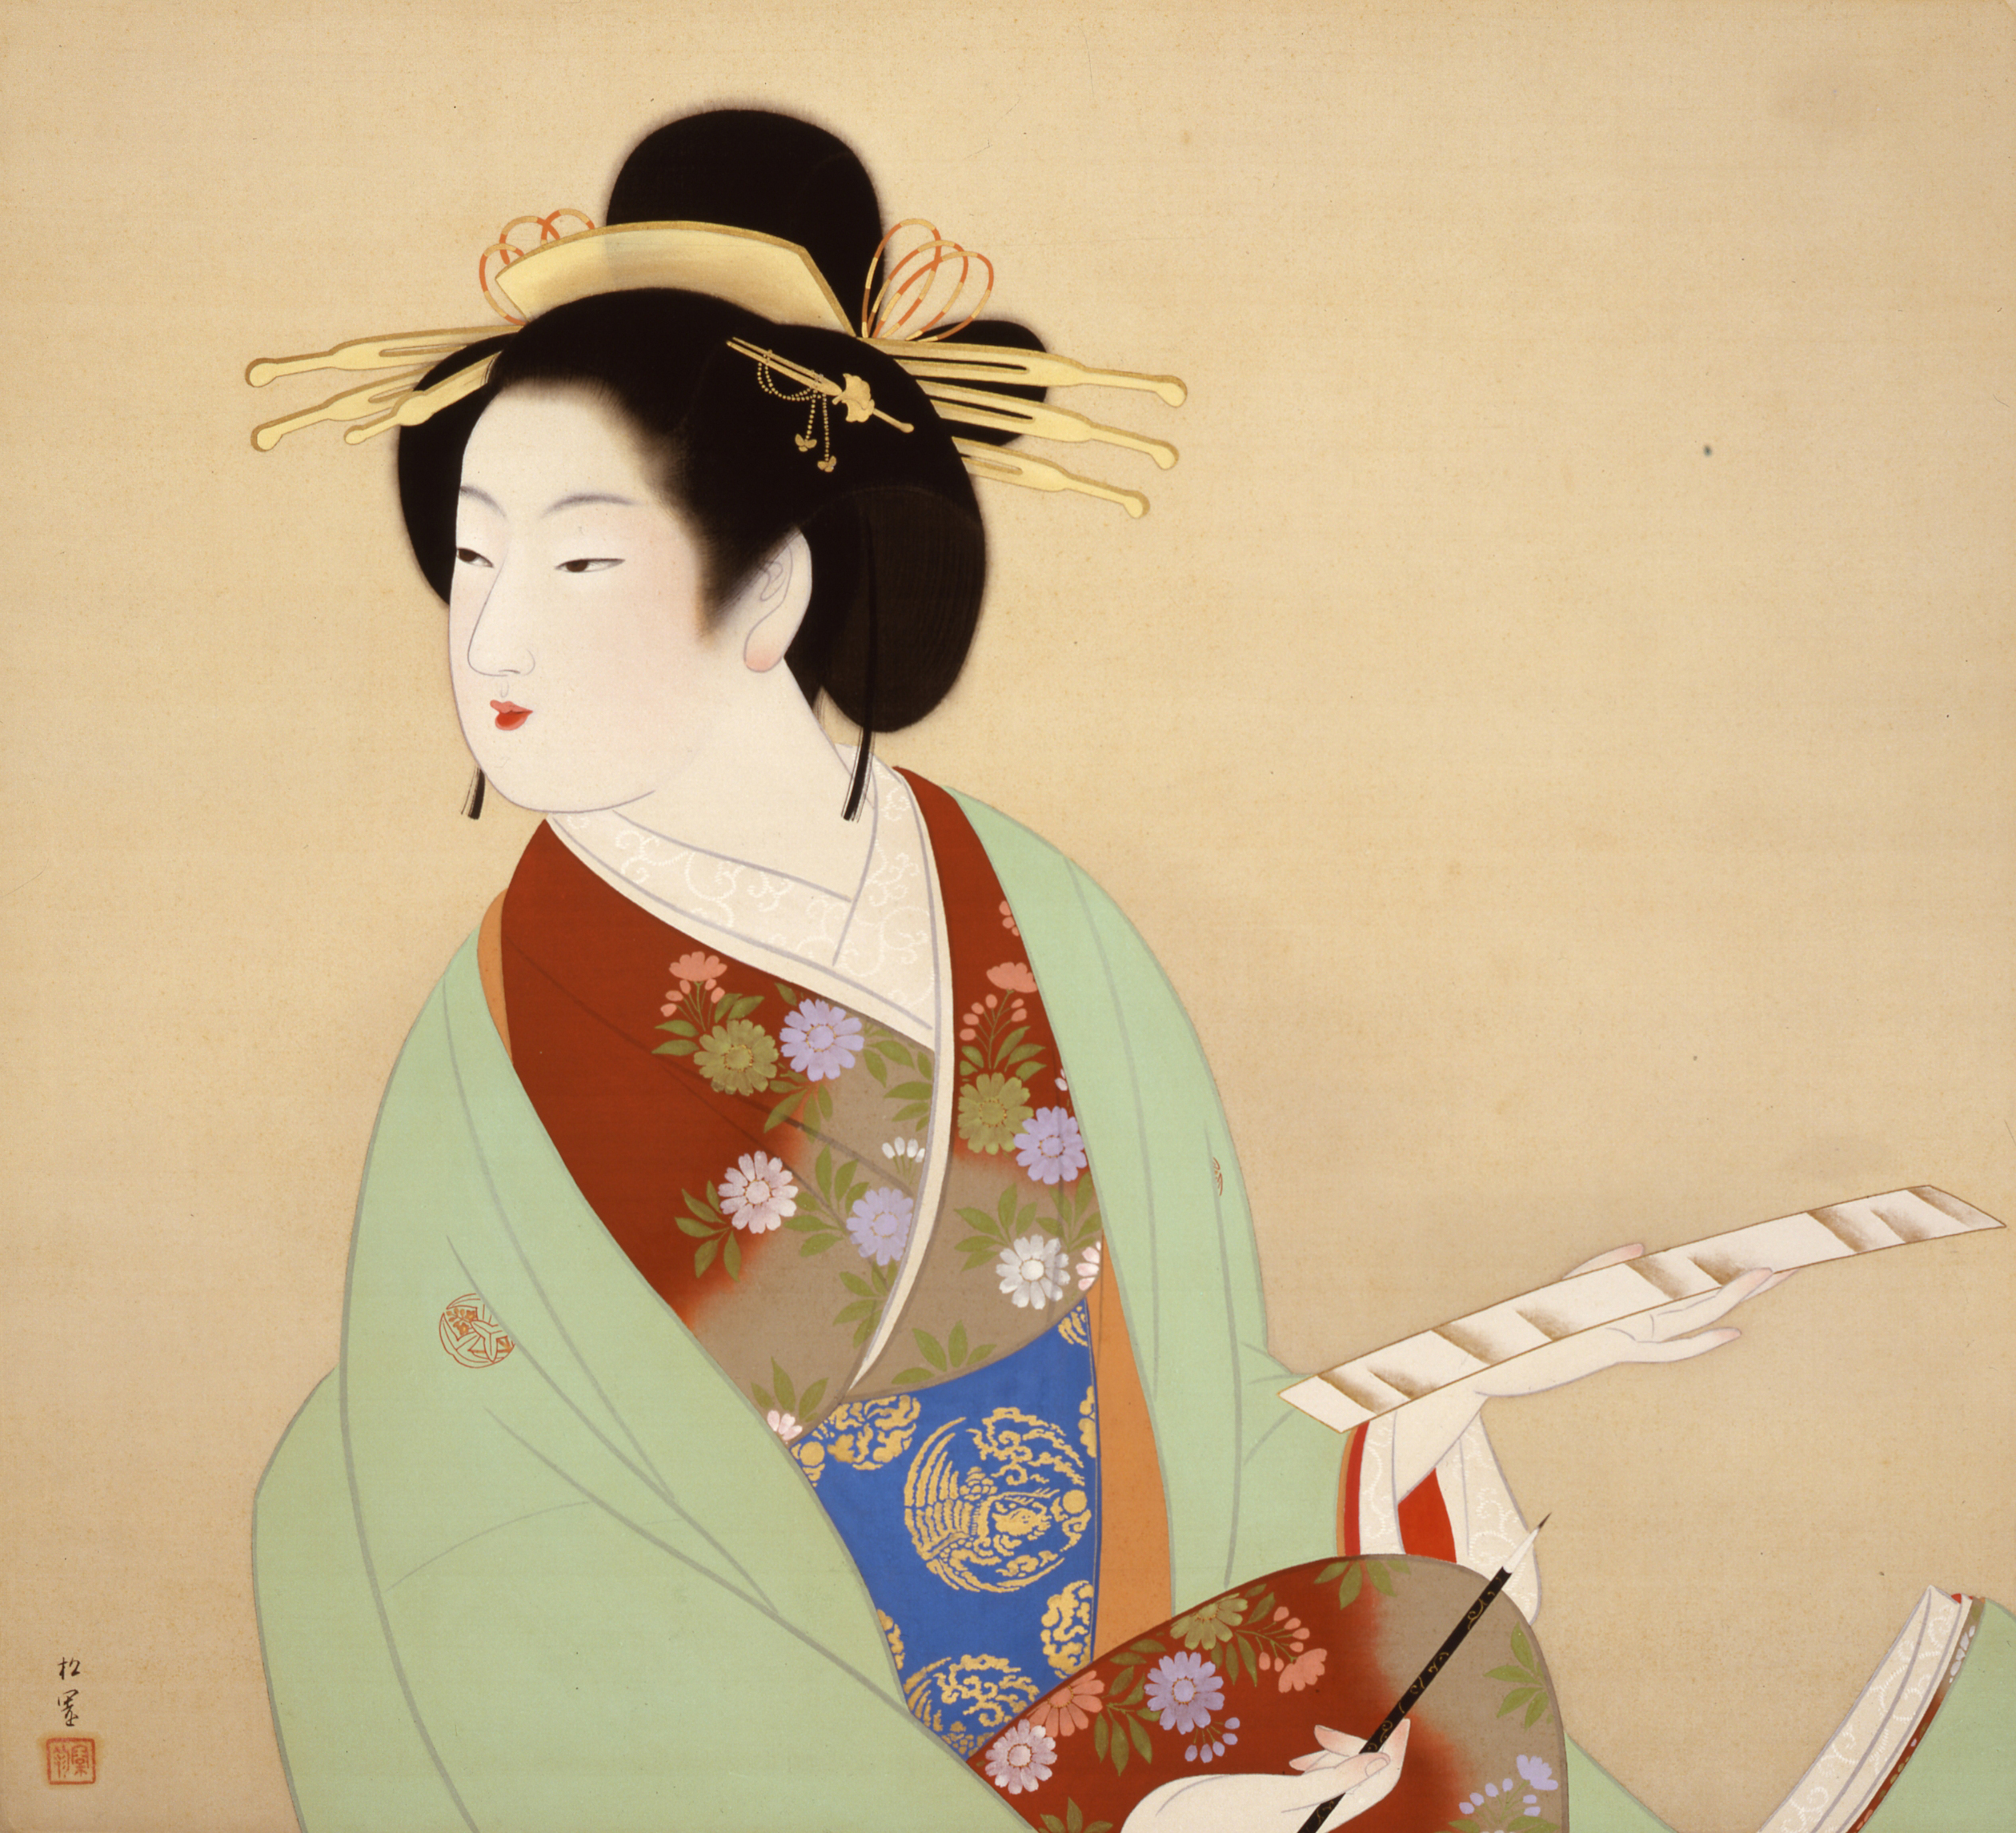 Shoen Uemura - Composition of a Poem